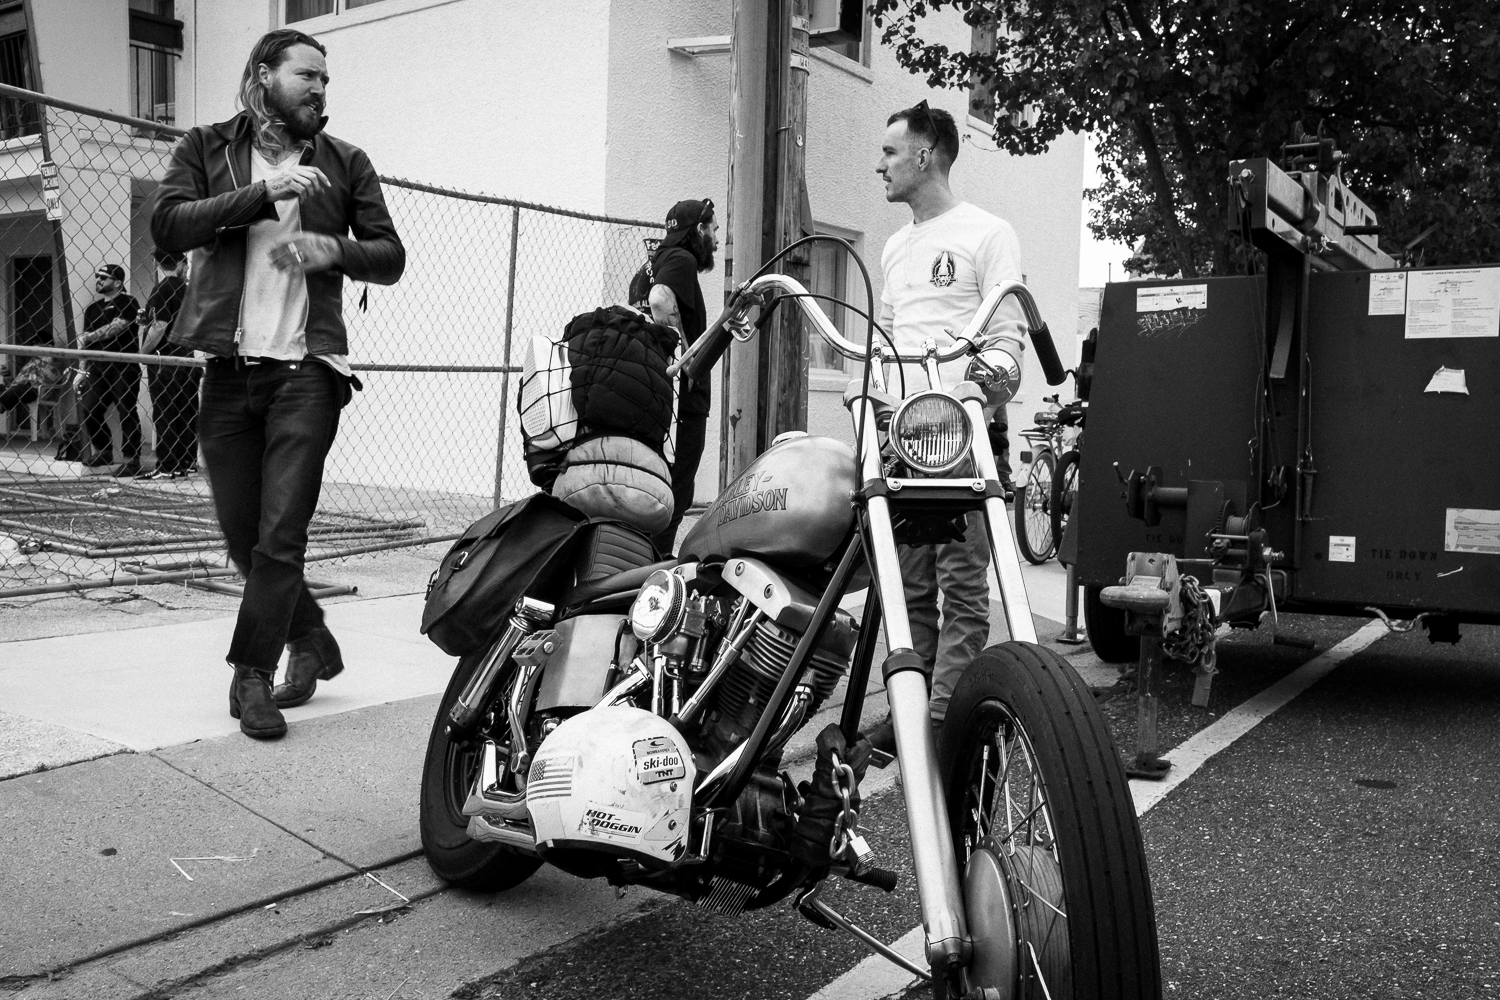 Bikers with a Harley Davidson chopper at The Night of the Troglodytes before The Race of Gentlemen gets started.